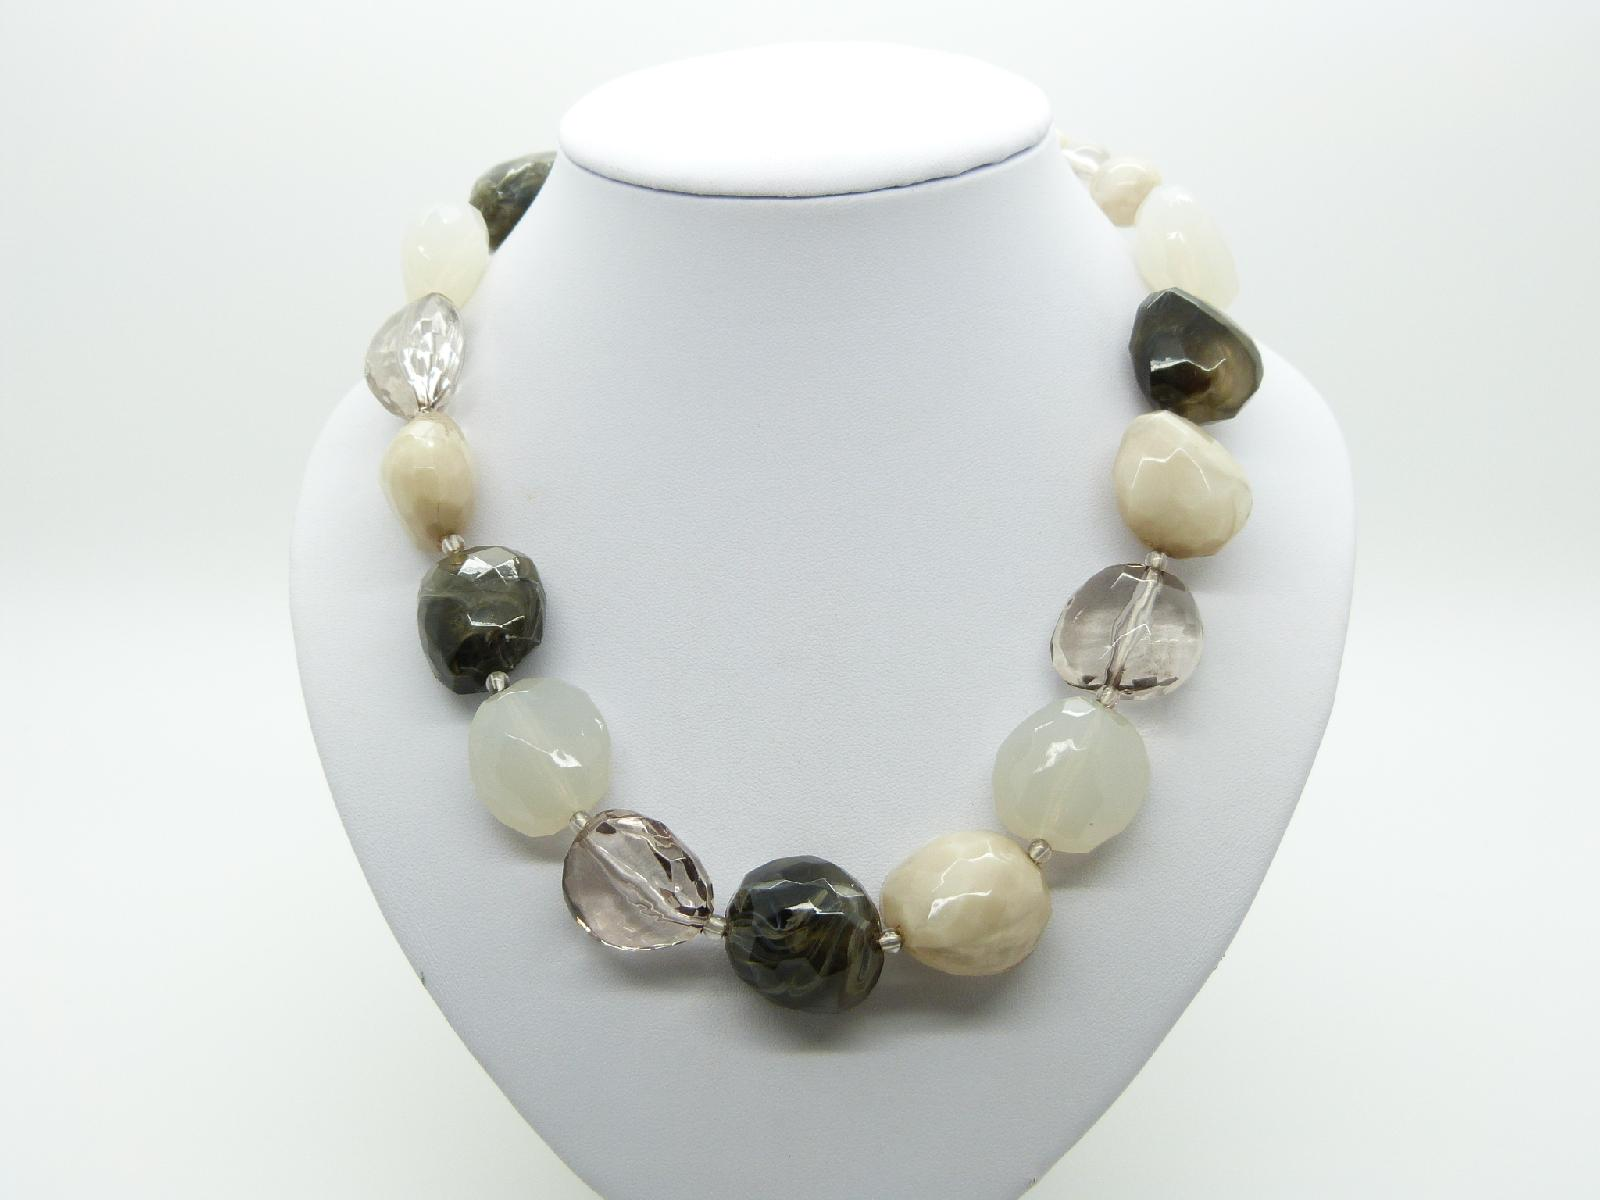 £13.00 - Lovely Chunky Four Colour Neutral Tones Lucite Plastic Faceted Bead Necklace 47cms